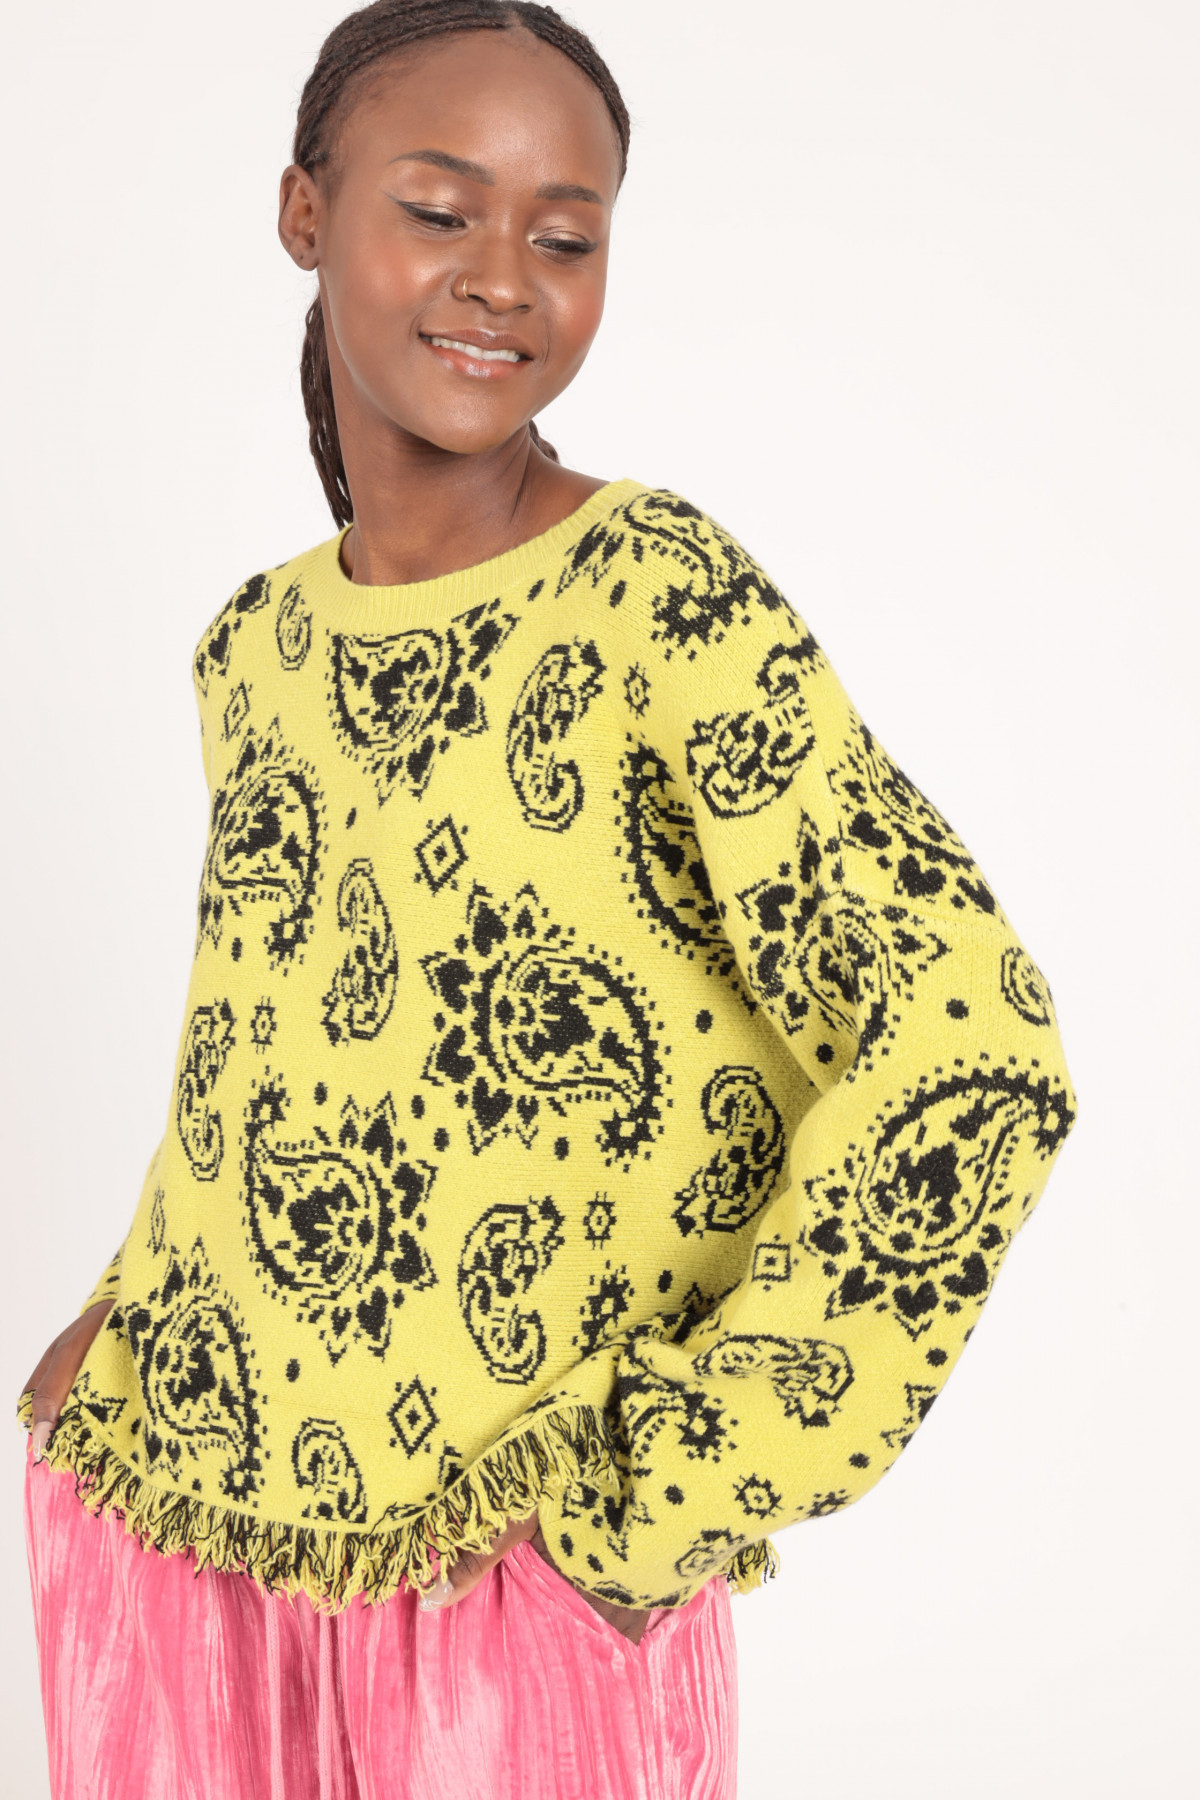 Cashmere Fantasy Print Jacquard Pullover with Fringed Bottom